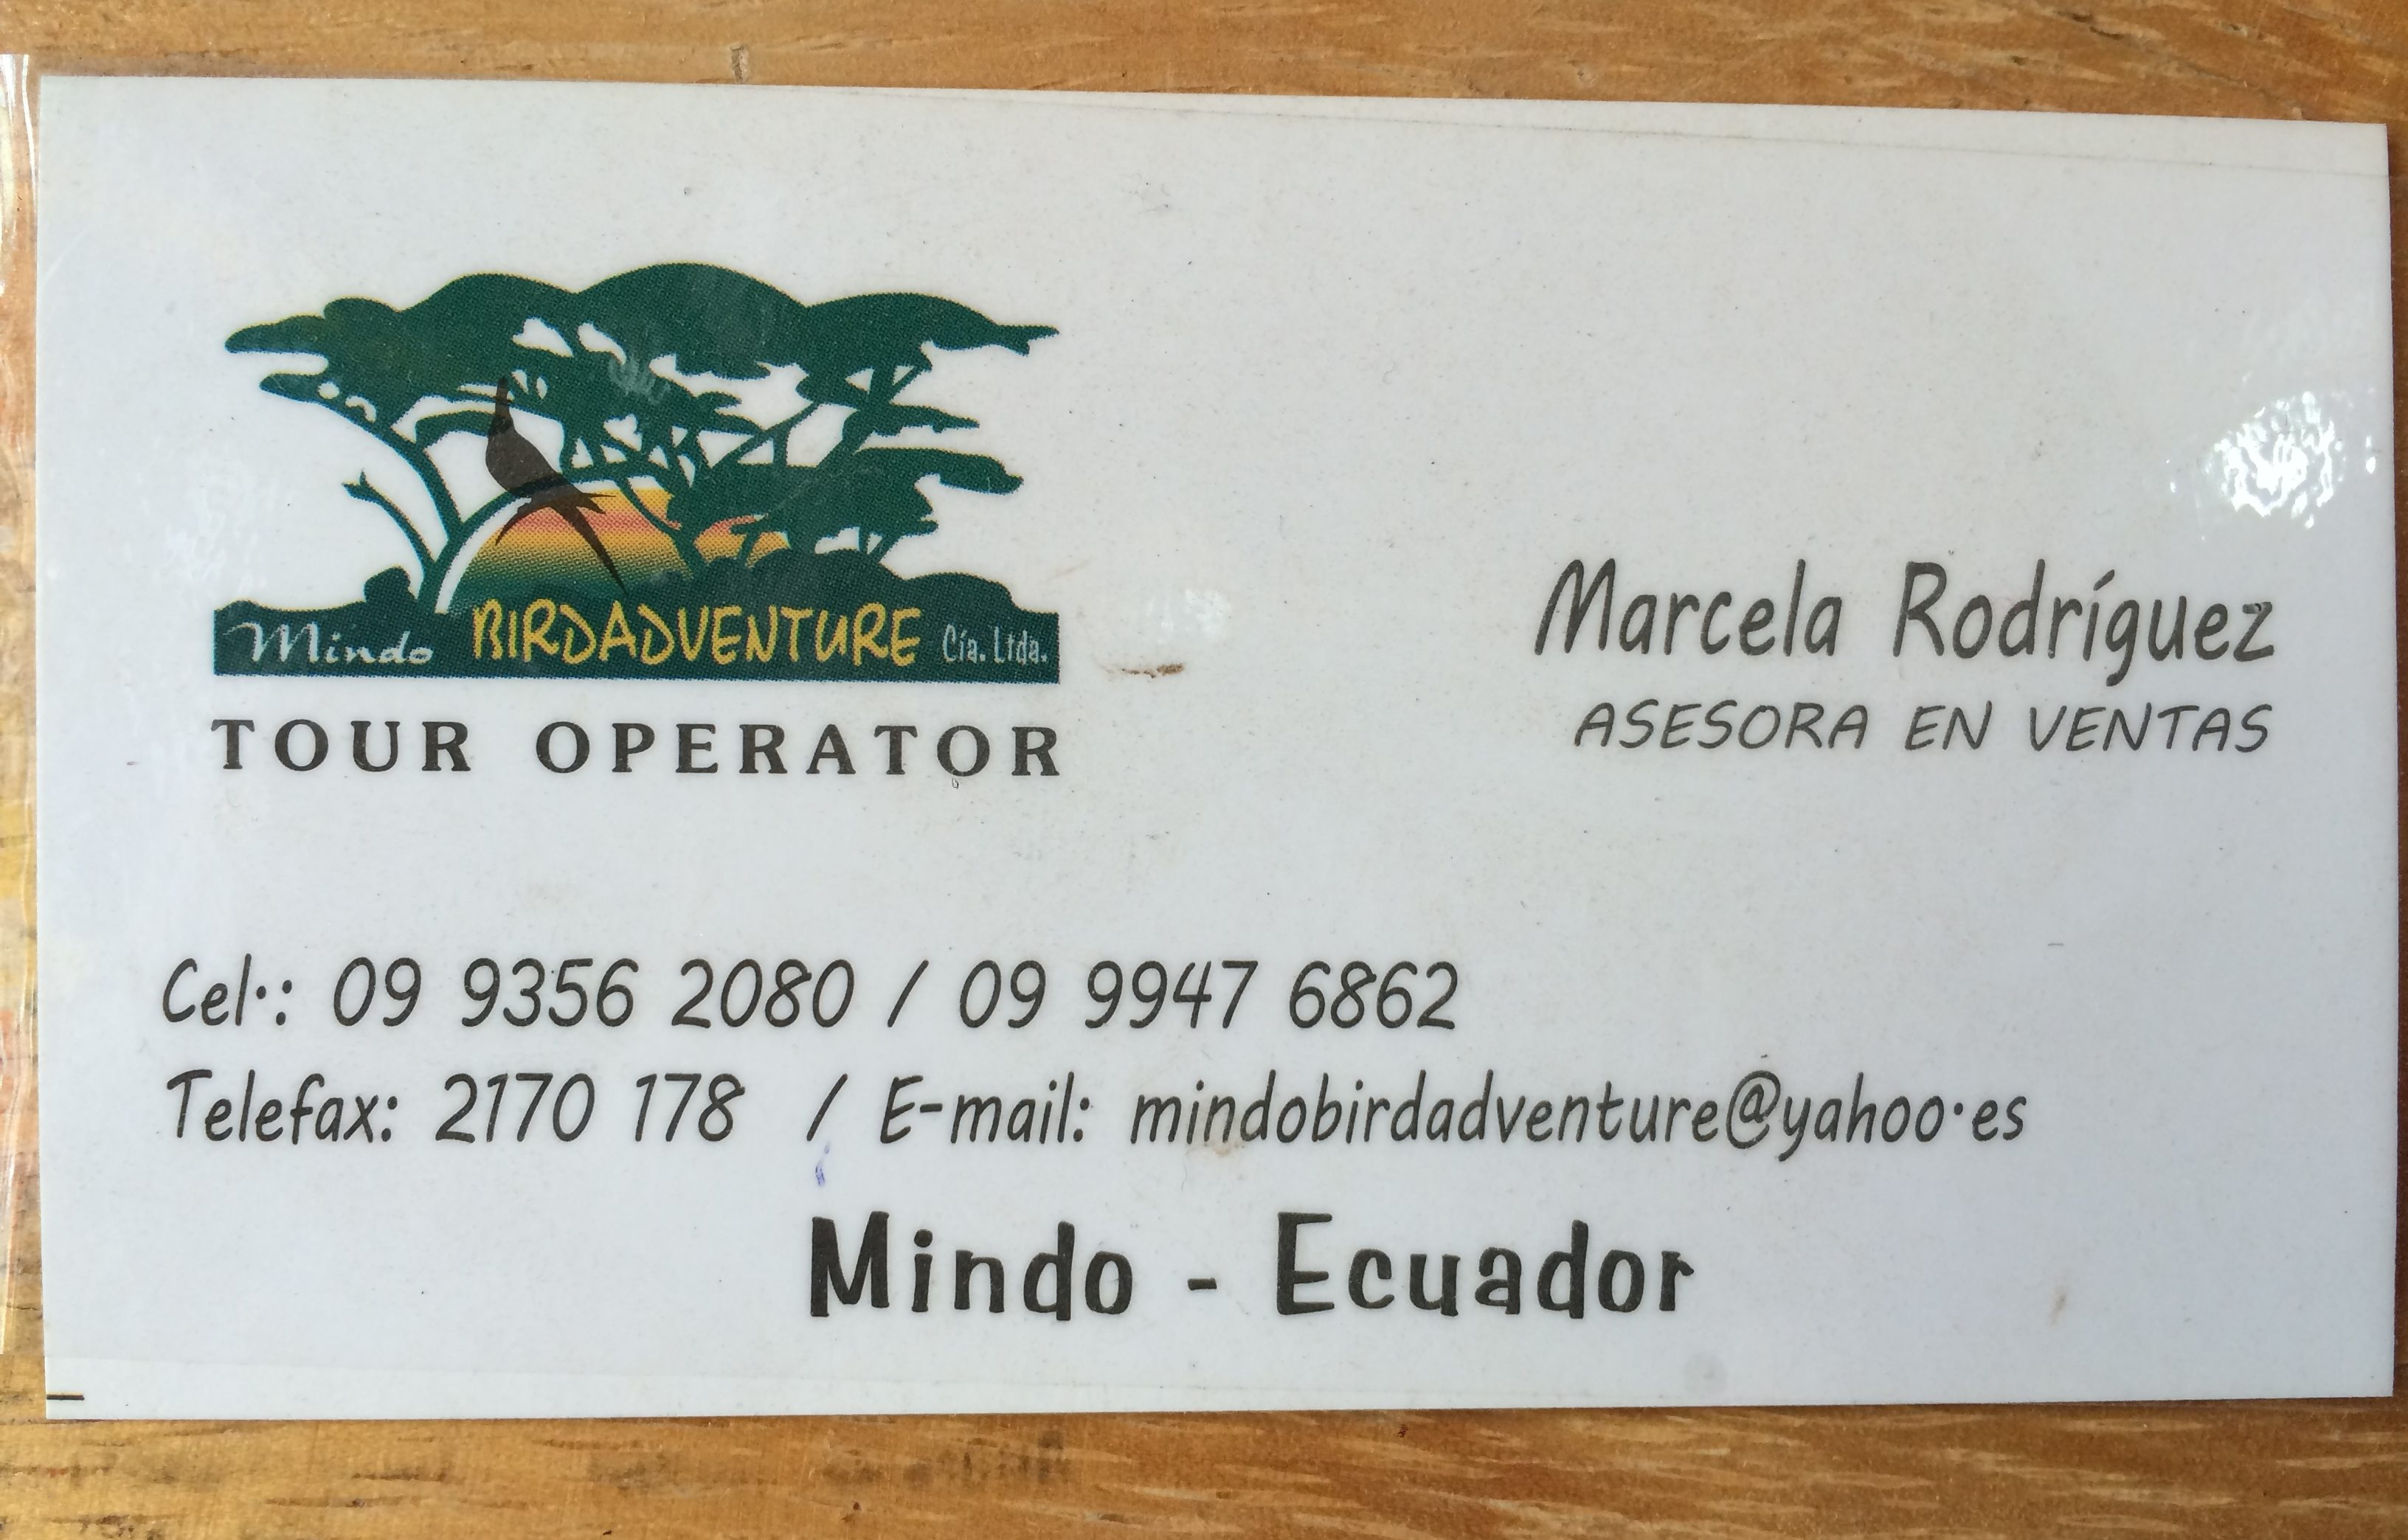 Mindo is the best place for a few tranquil days in Ecuador away from the beach, or for a long day trip from Quito. Check out this guide to the town! | #quito #mindo #ecuador #travel #things #to #do #guide #itinerary #south #america #mariposario #chocolate #cacao #factory #cloud #forest #daytrip #ecotourism